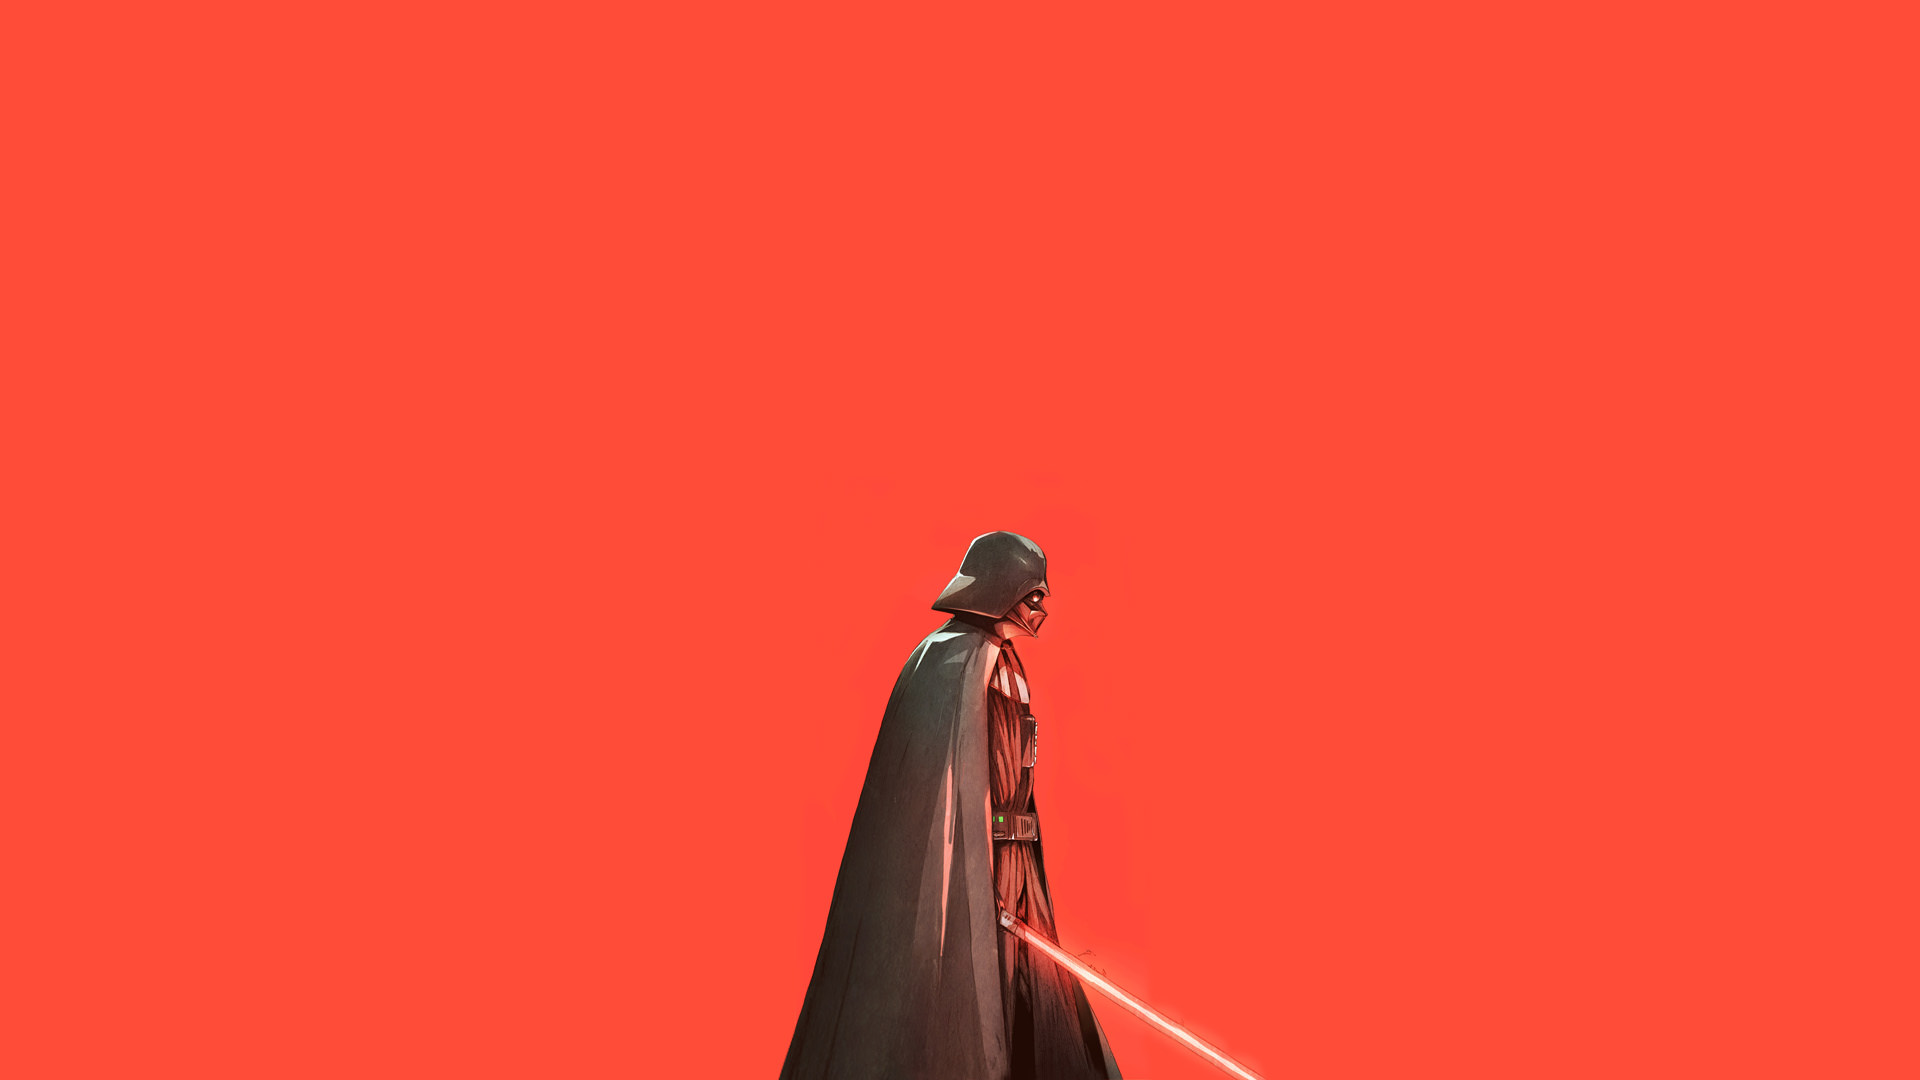 Darth Vader Artwork Hd Hd Movies 4k Wallpapers Images Backgrounds Photos And Pictures